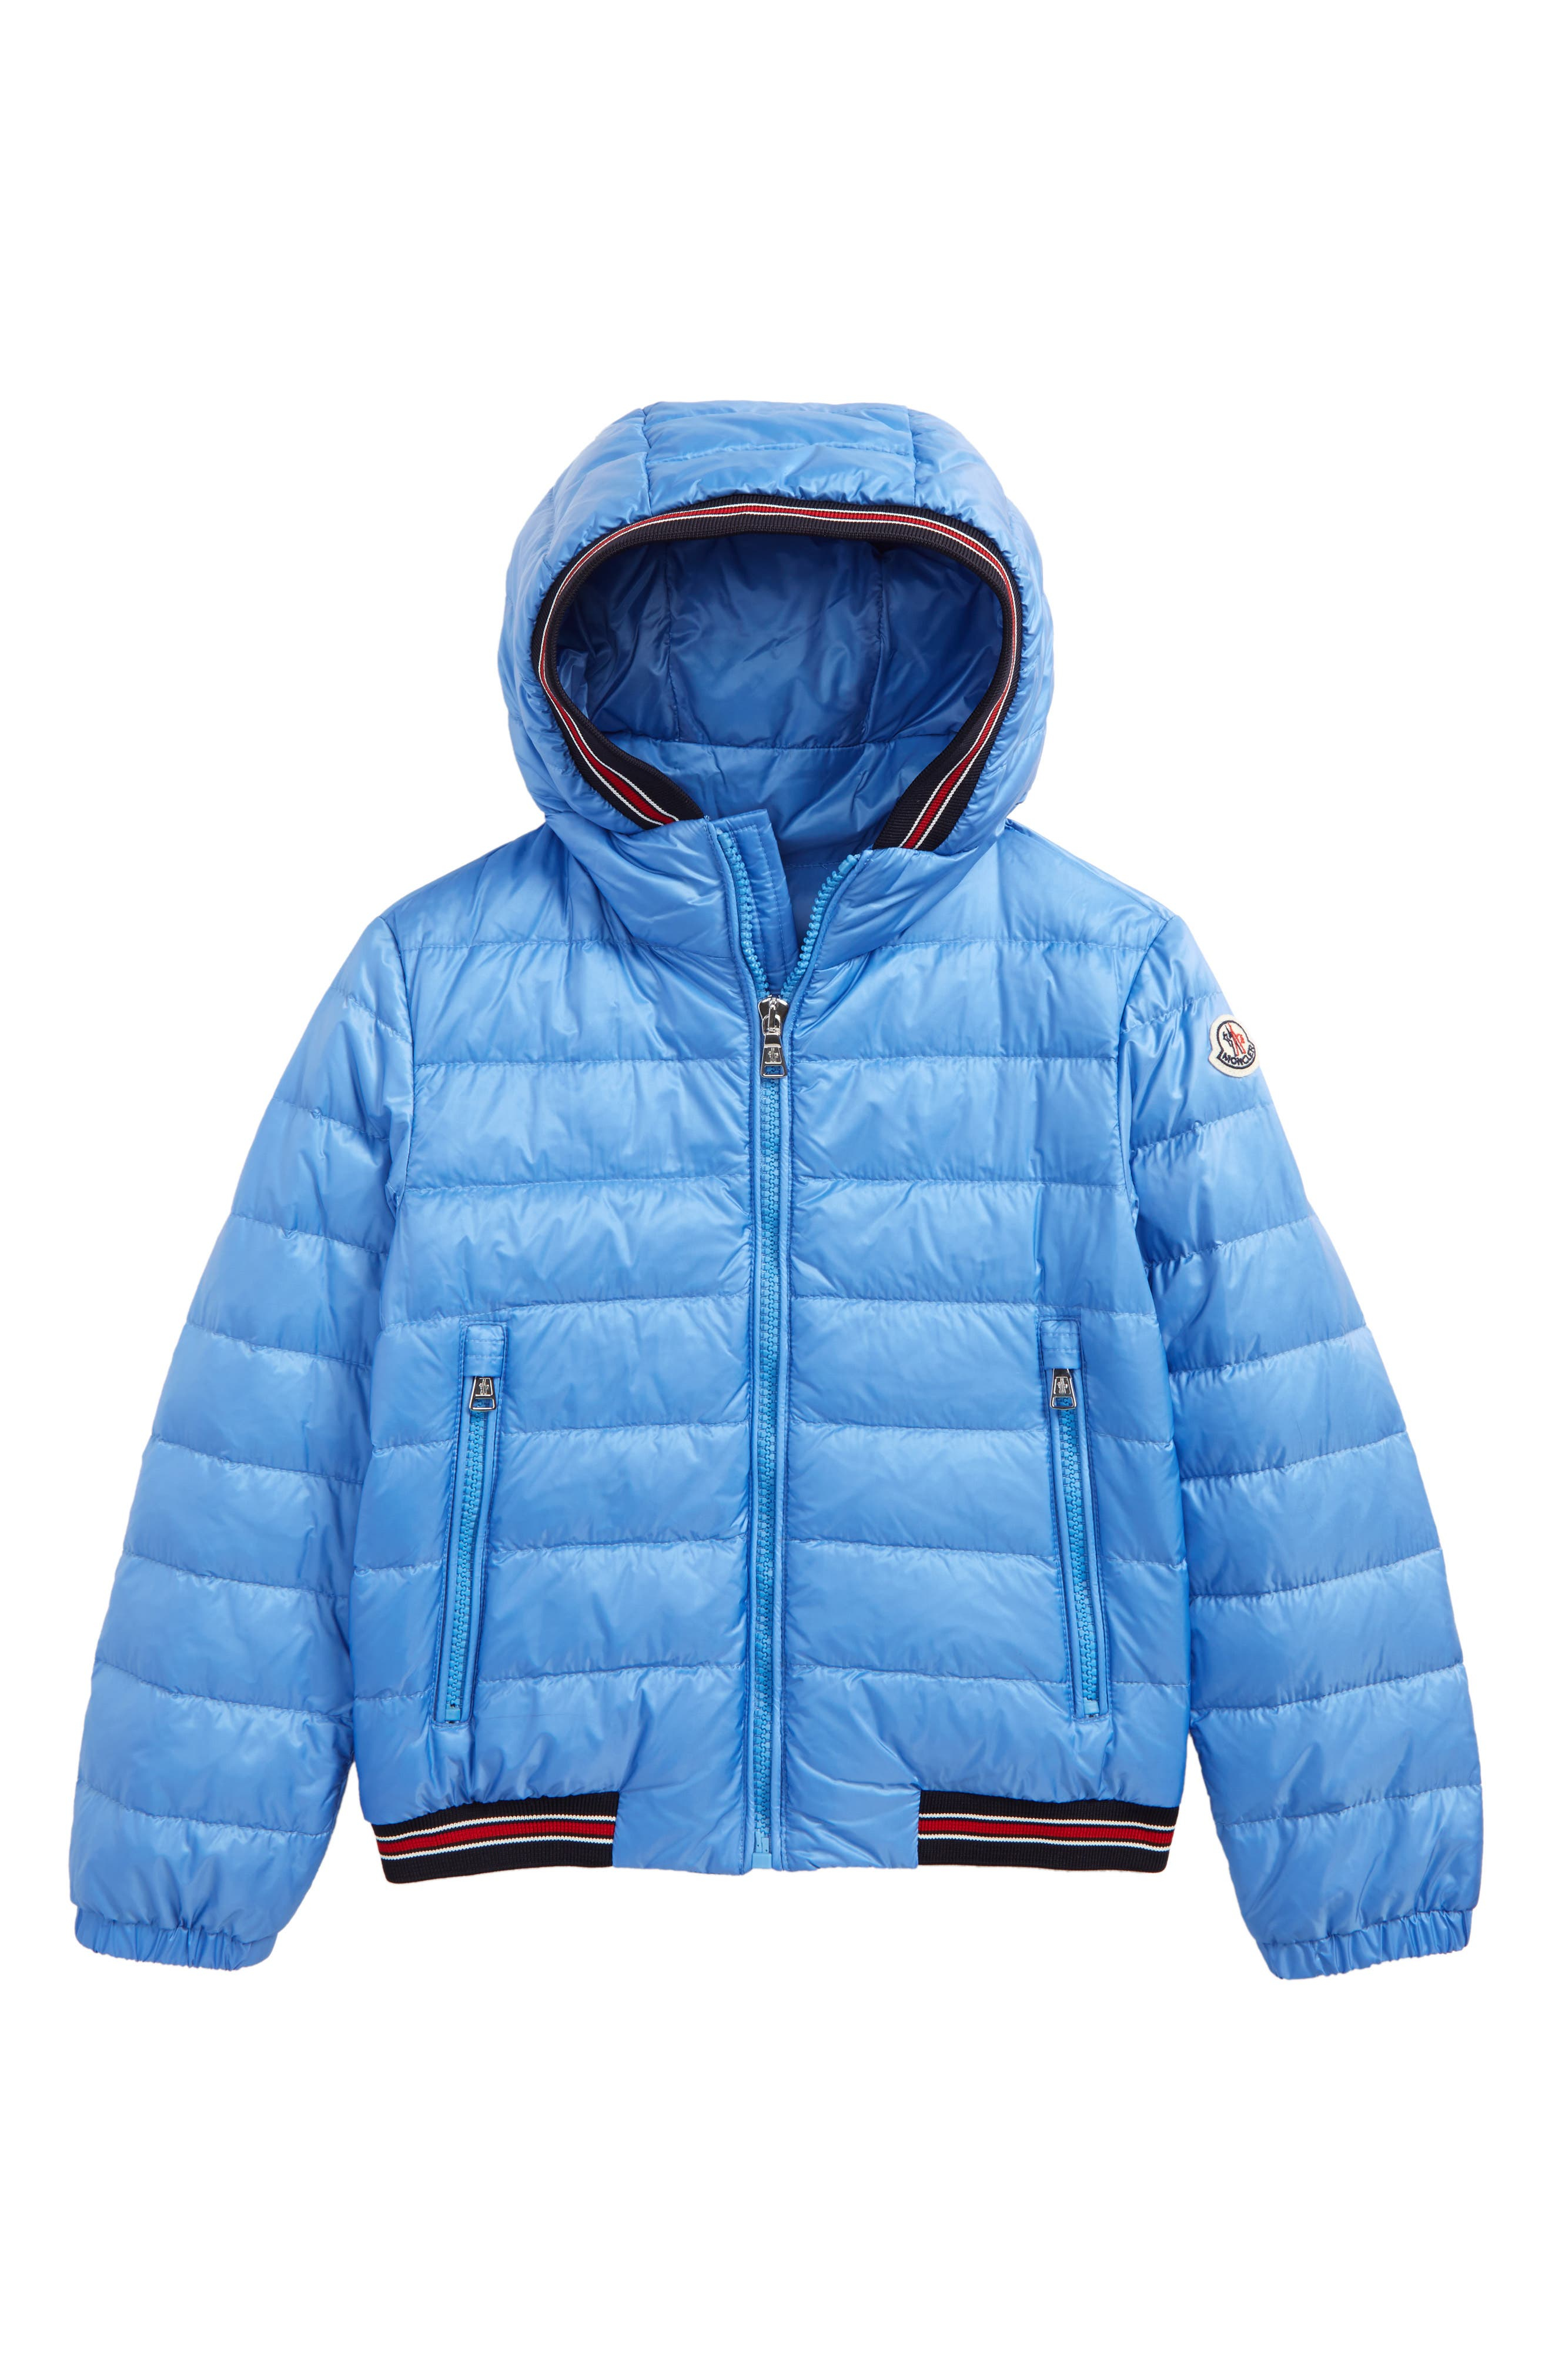 Eliot Hooded Goose Down Jacket,                         Main,                         color, 450